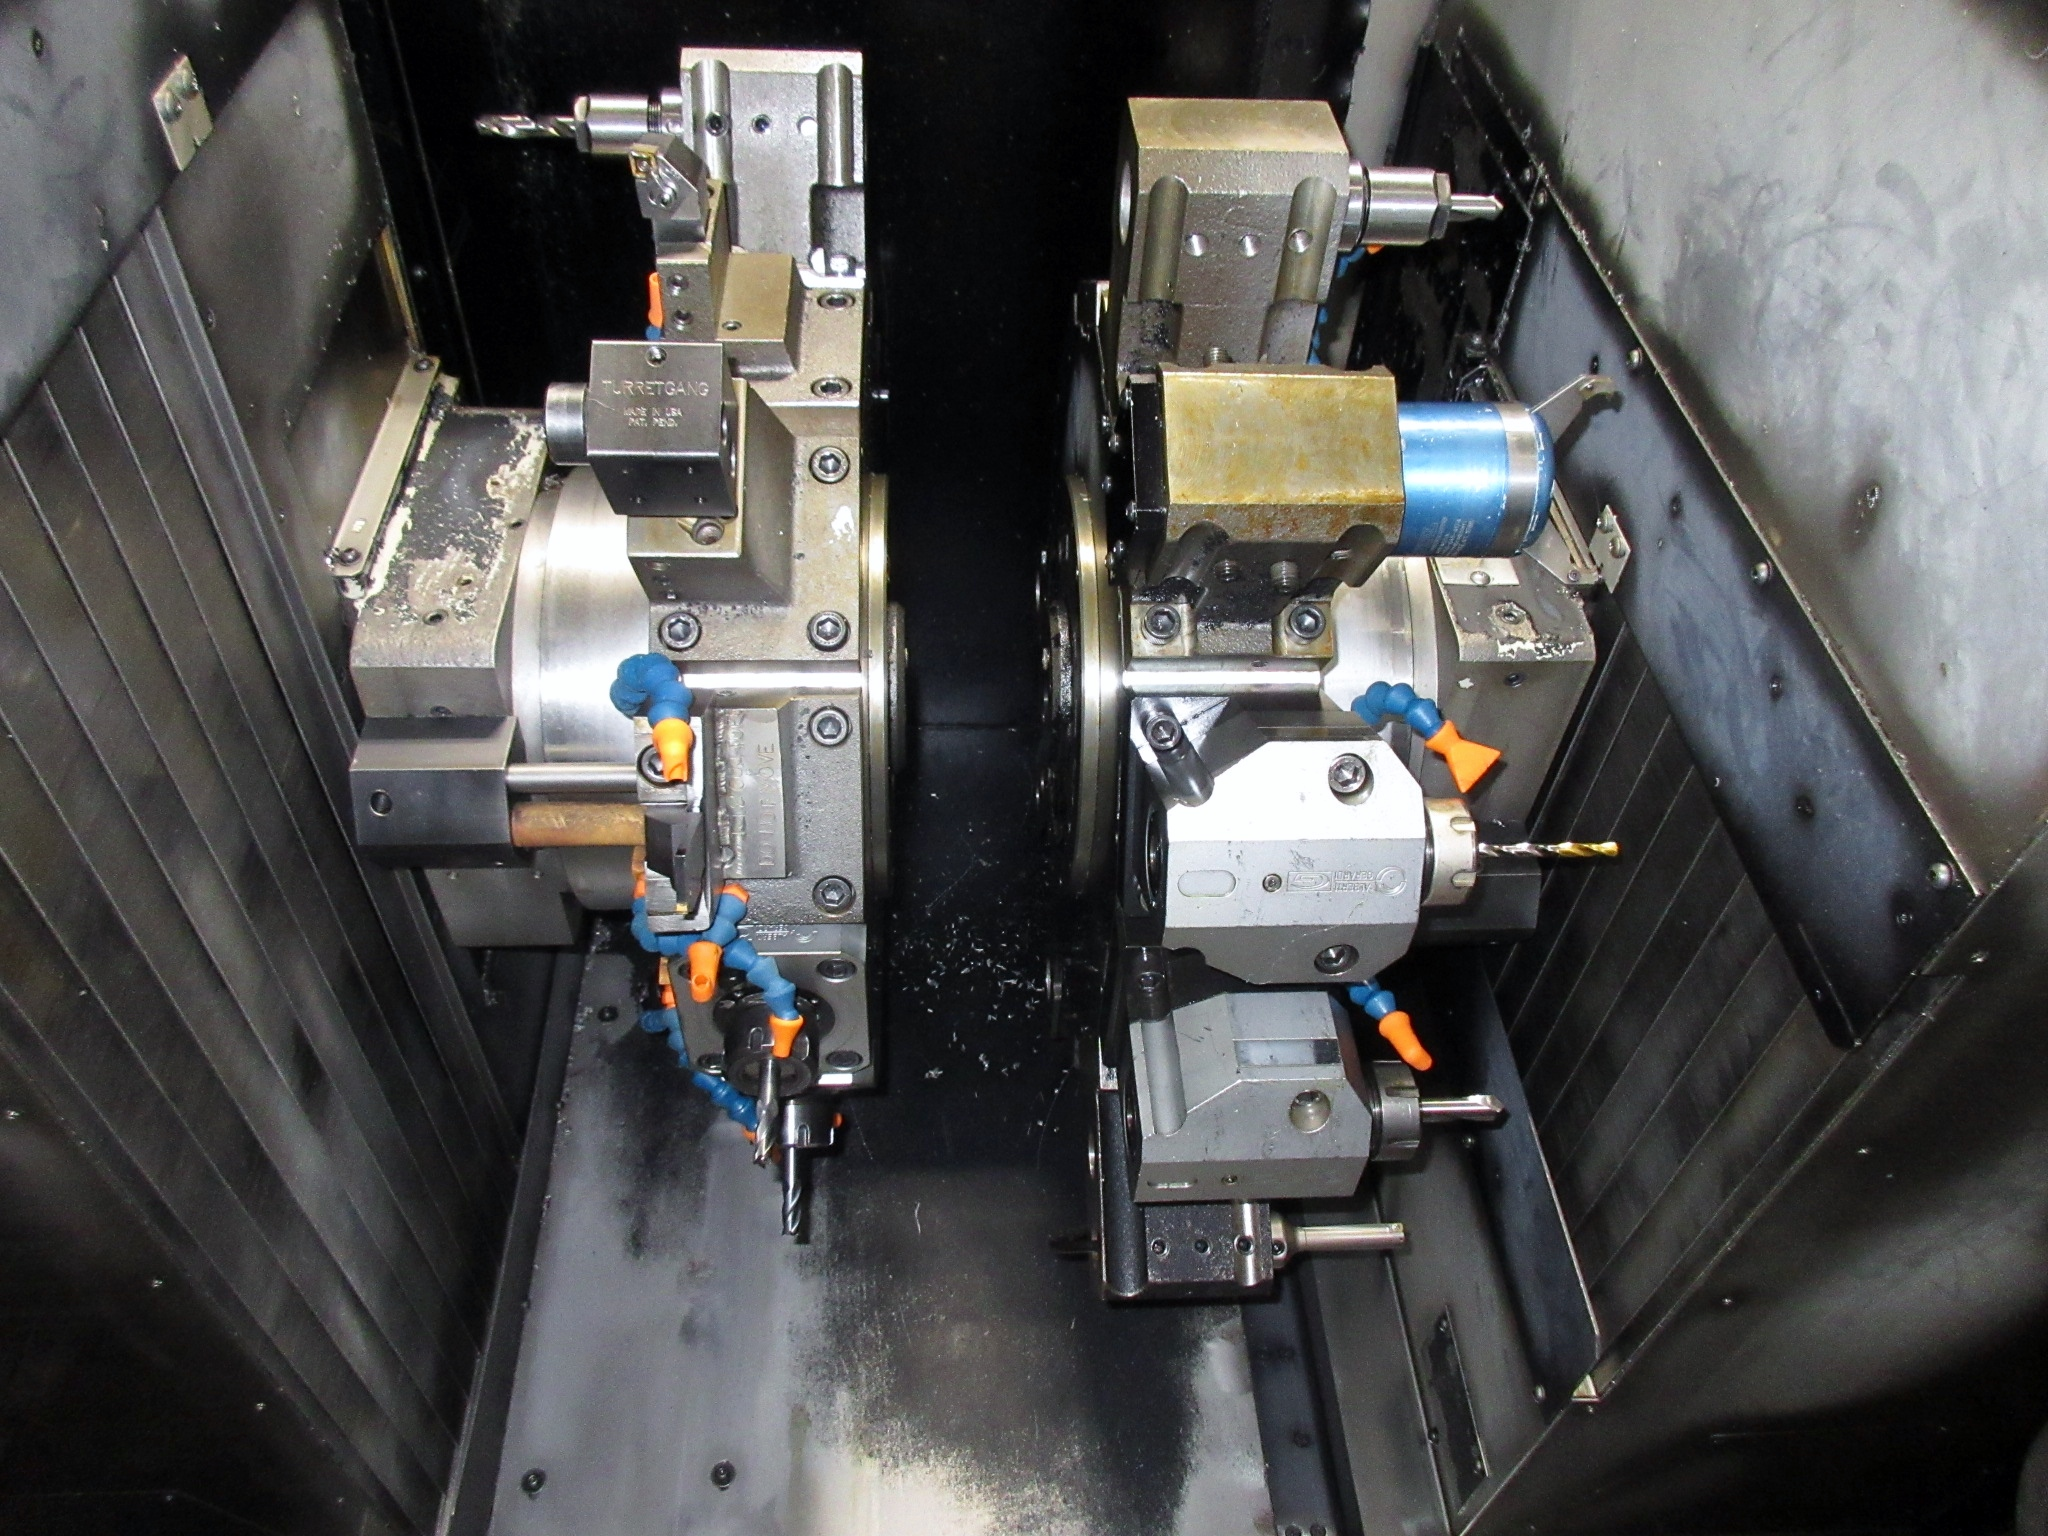 NAKAMURA TOME TW-30MM 7-AXIS CNC TWIN SPINDLE TURNING CENTER - Image 7 of 21